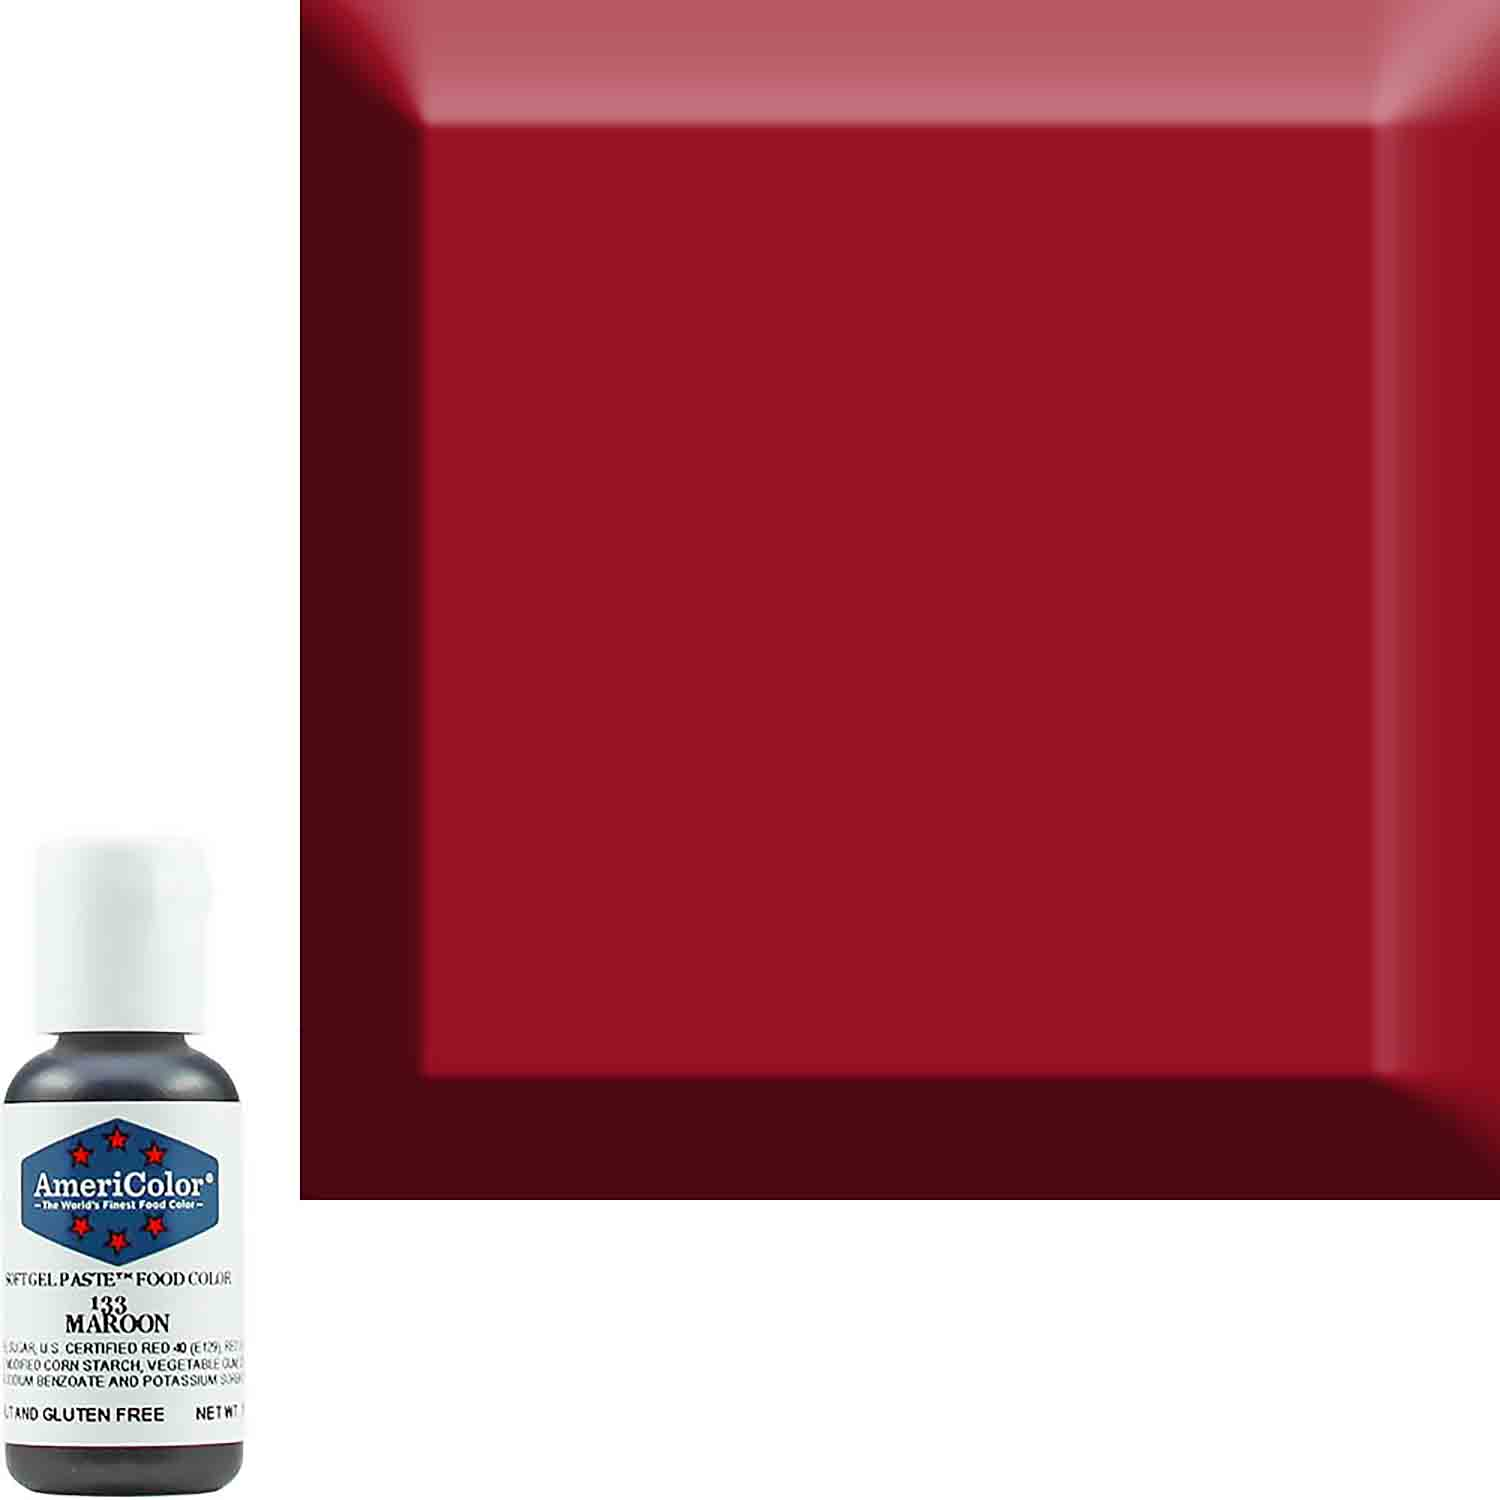 Maroon Americolor® Soft Gel Paste Food Color (Old # 41-8033)